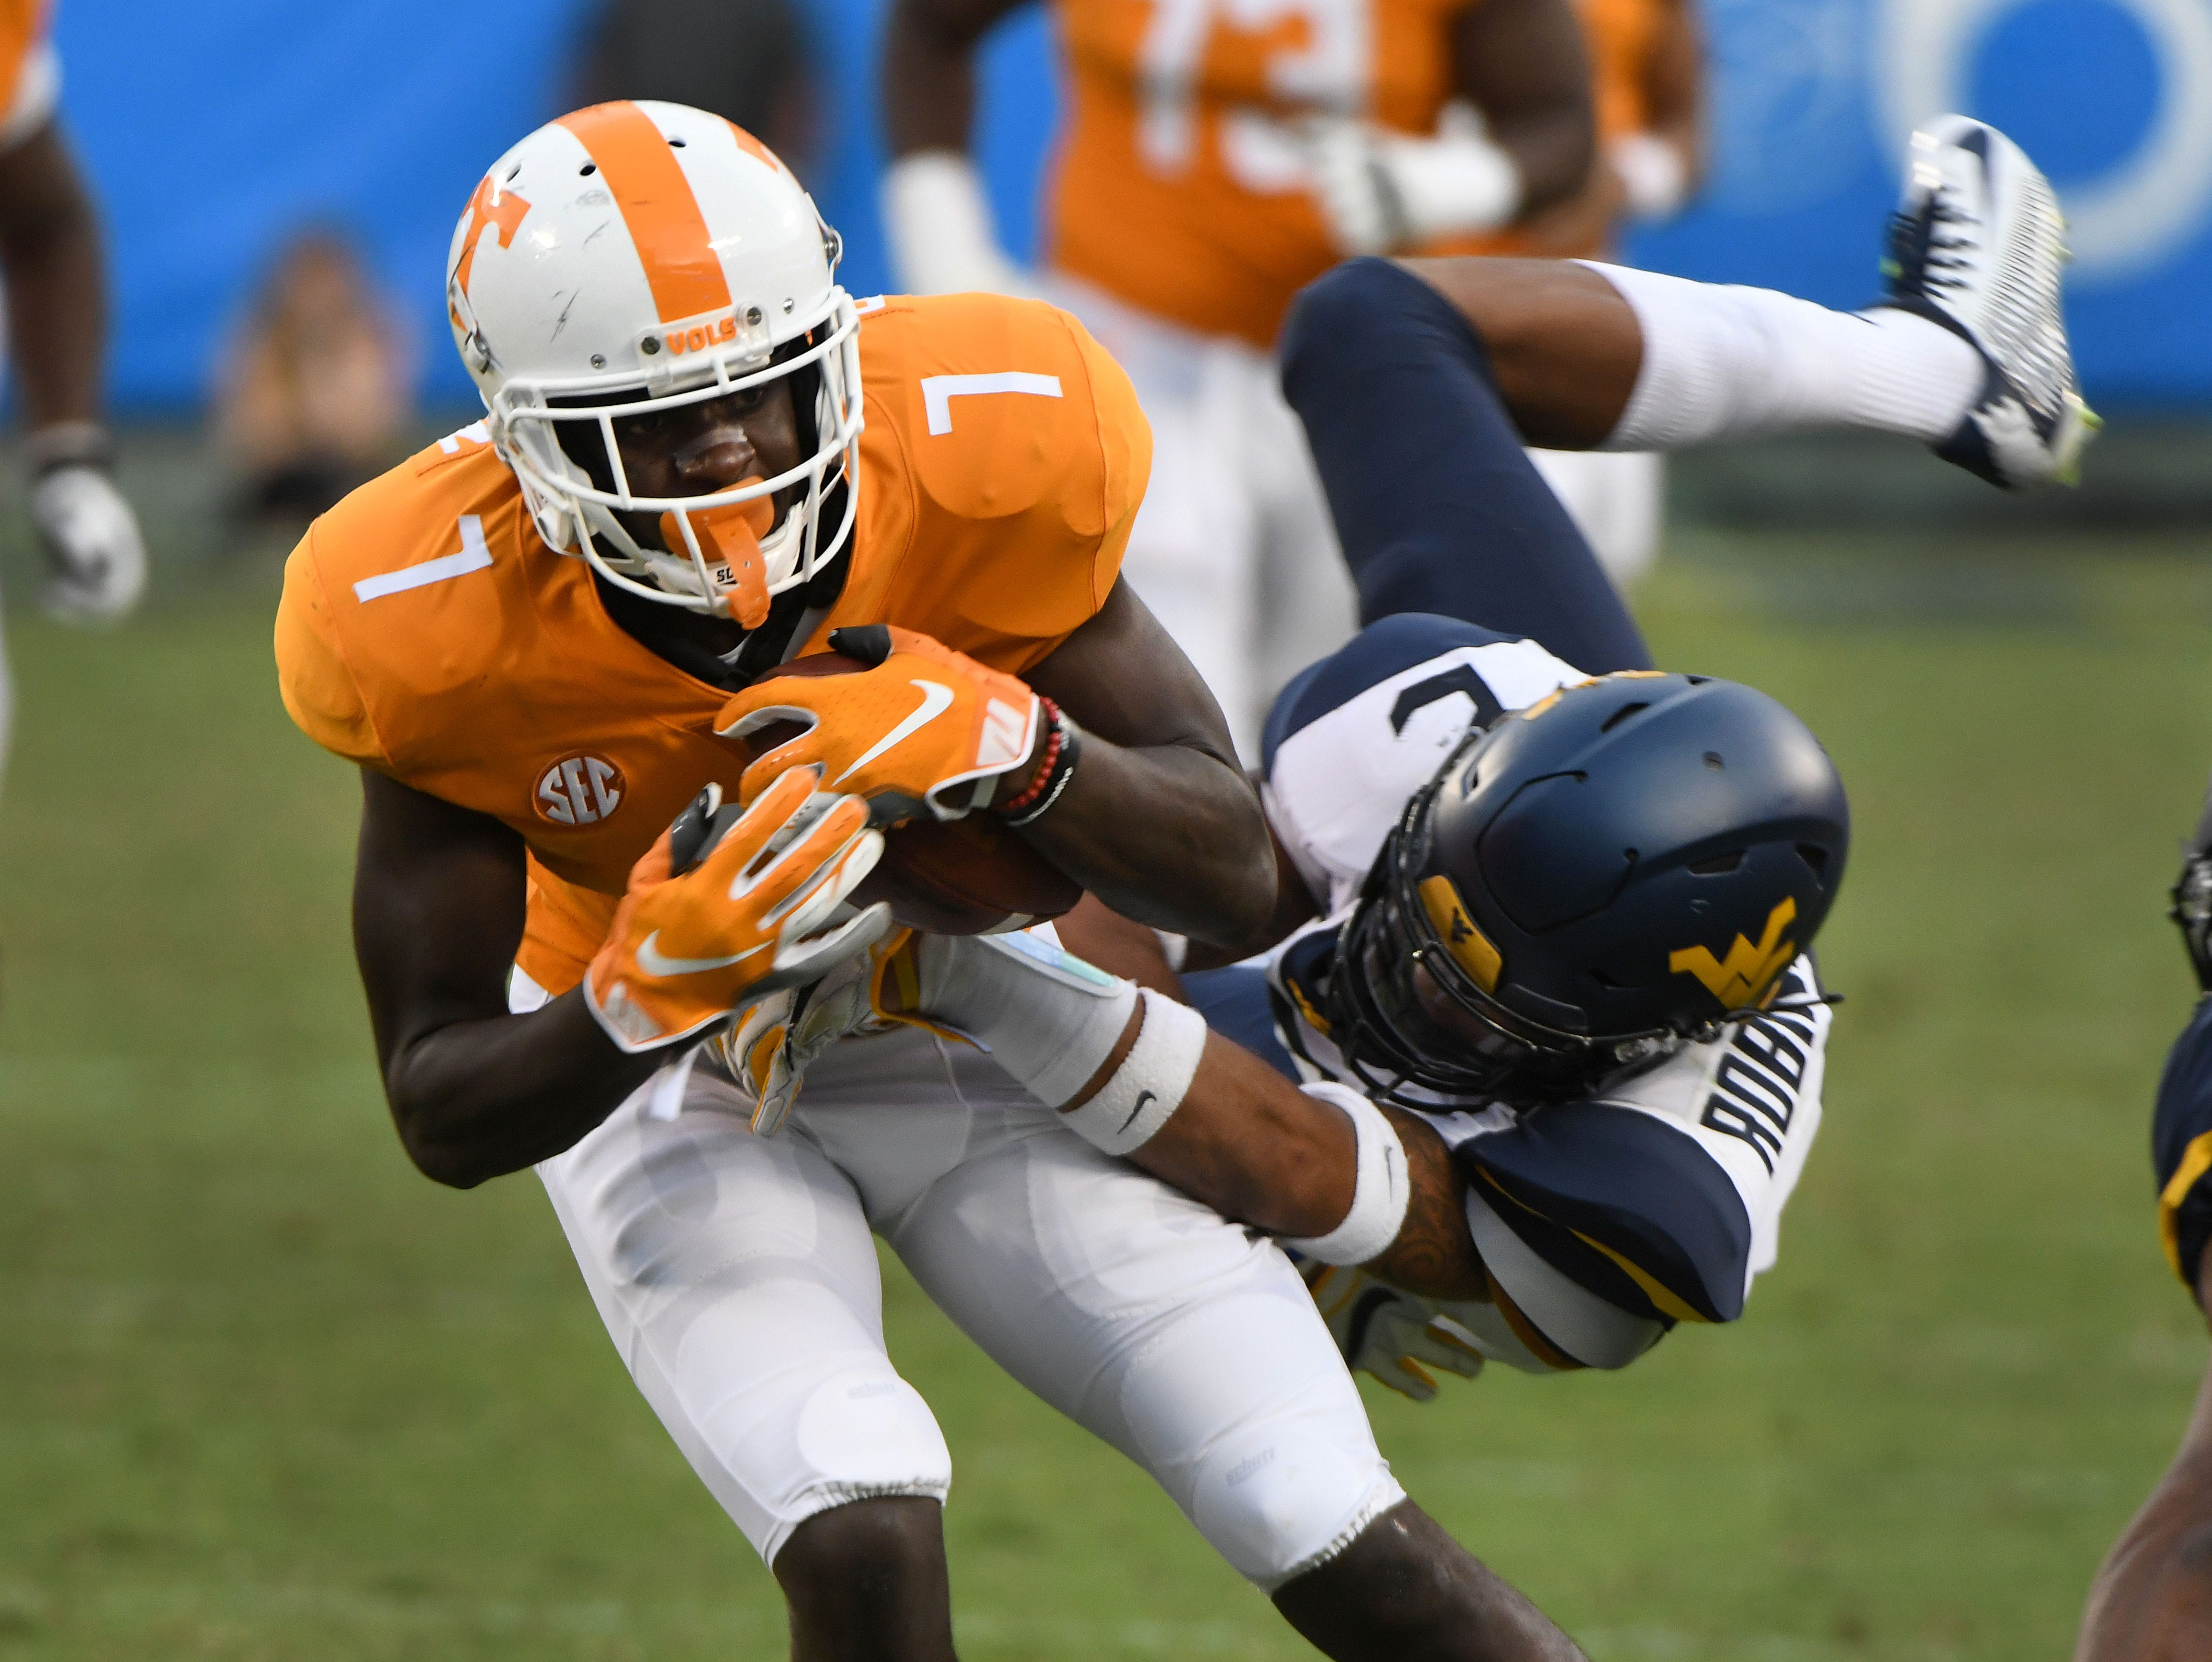 Tennessee wide receiver Brandon Johnson (7) during the final minutes of their 40-14 loss to West Virginia in the Belk College Kickoff game in Charlotte, NC Saturday, September 1, 2018.